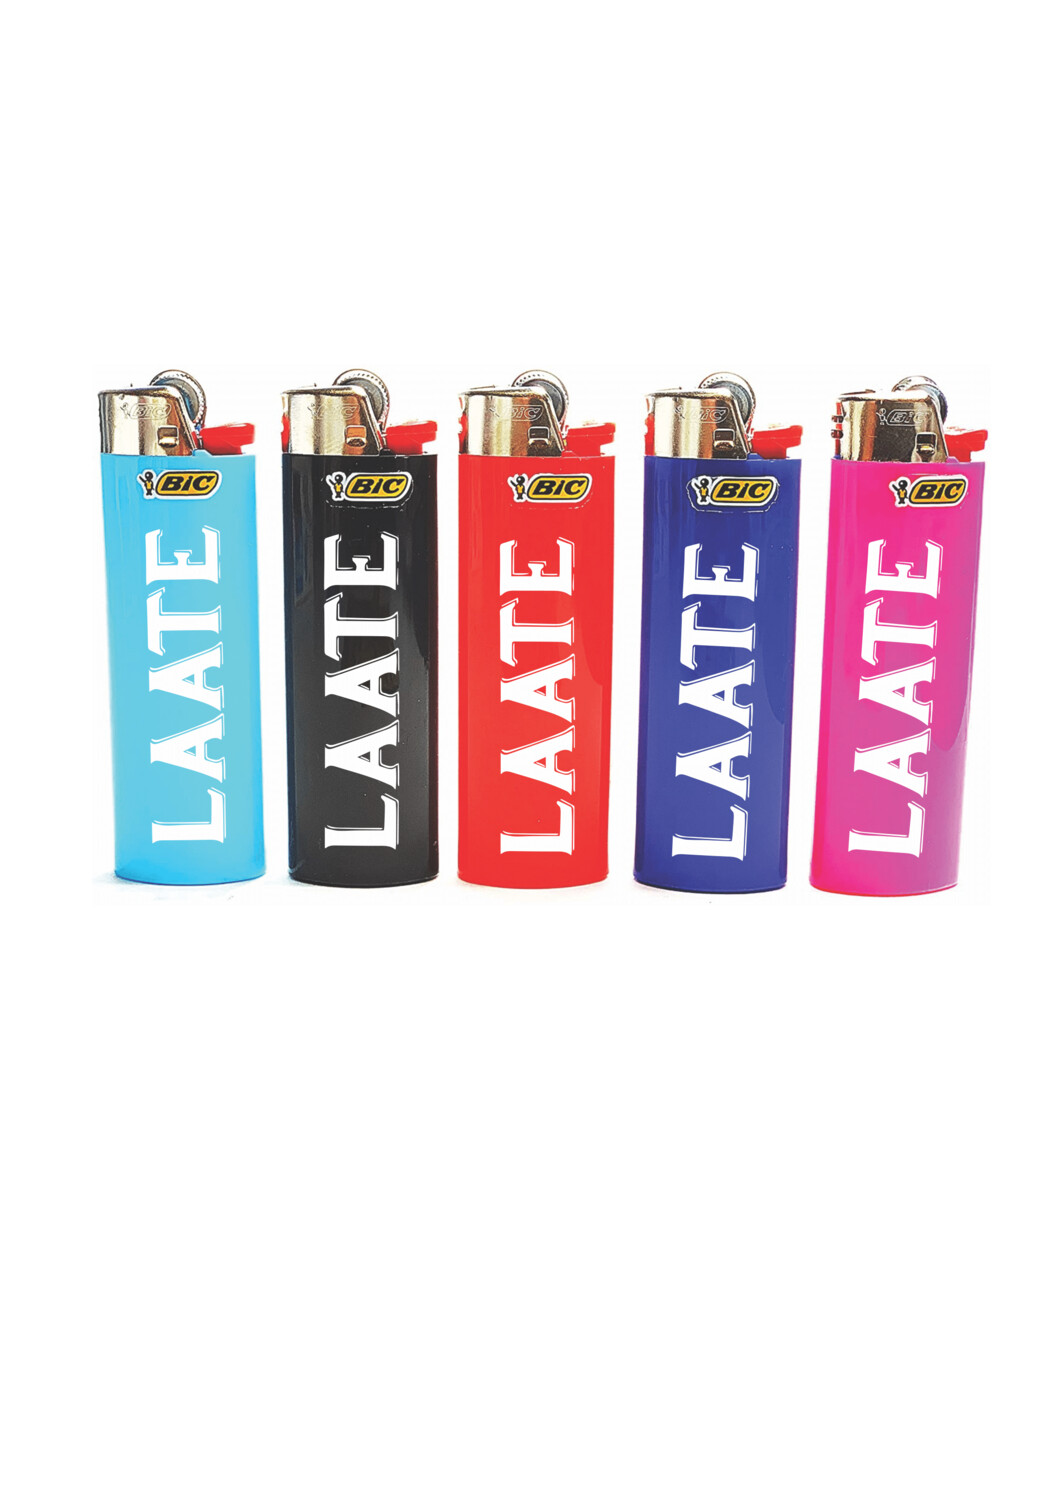 Printed Bic lighters